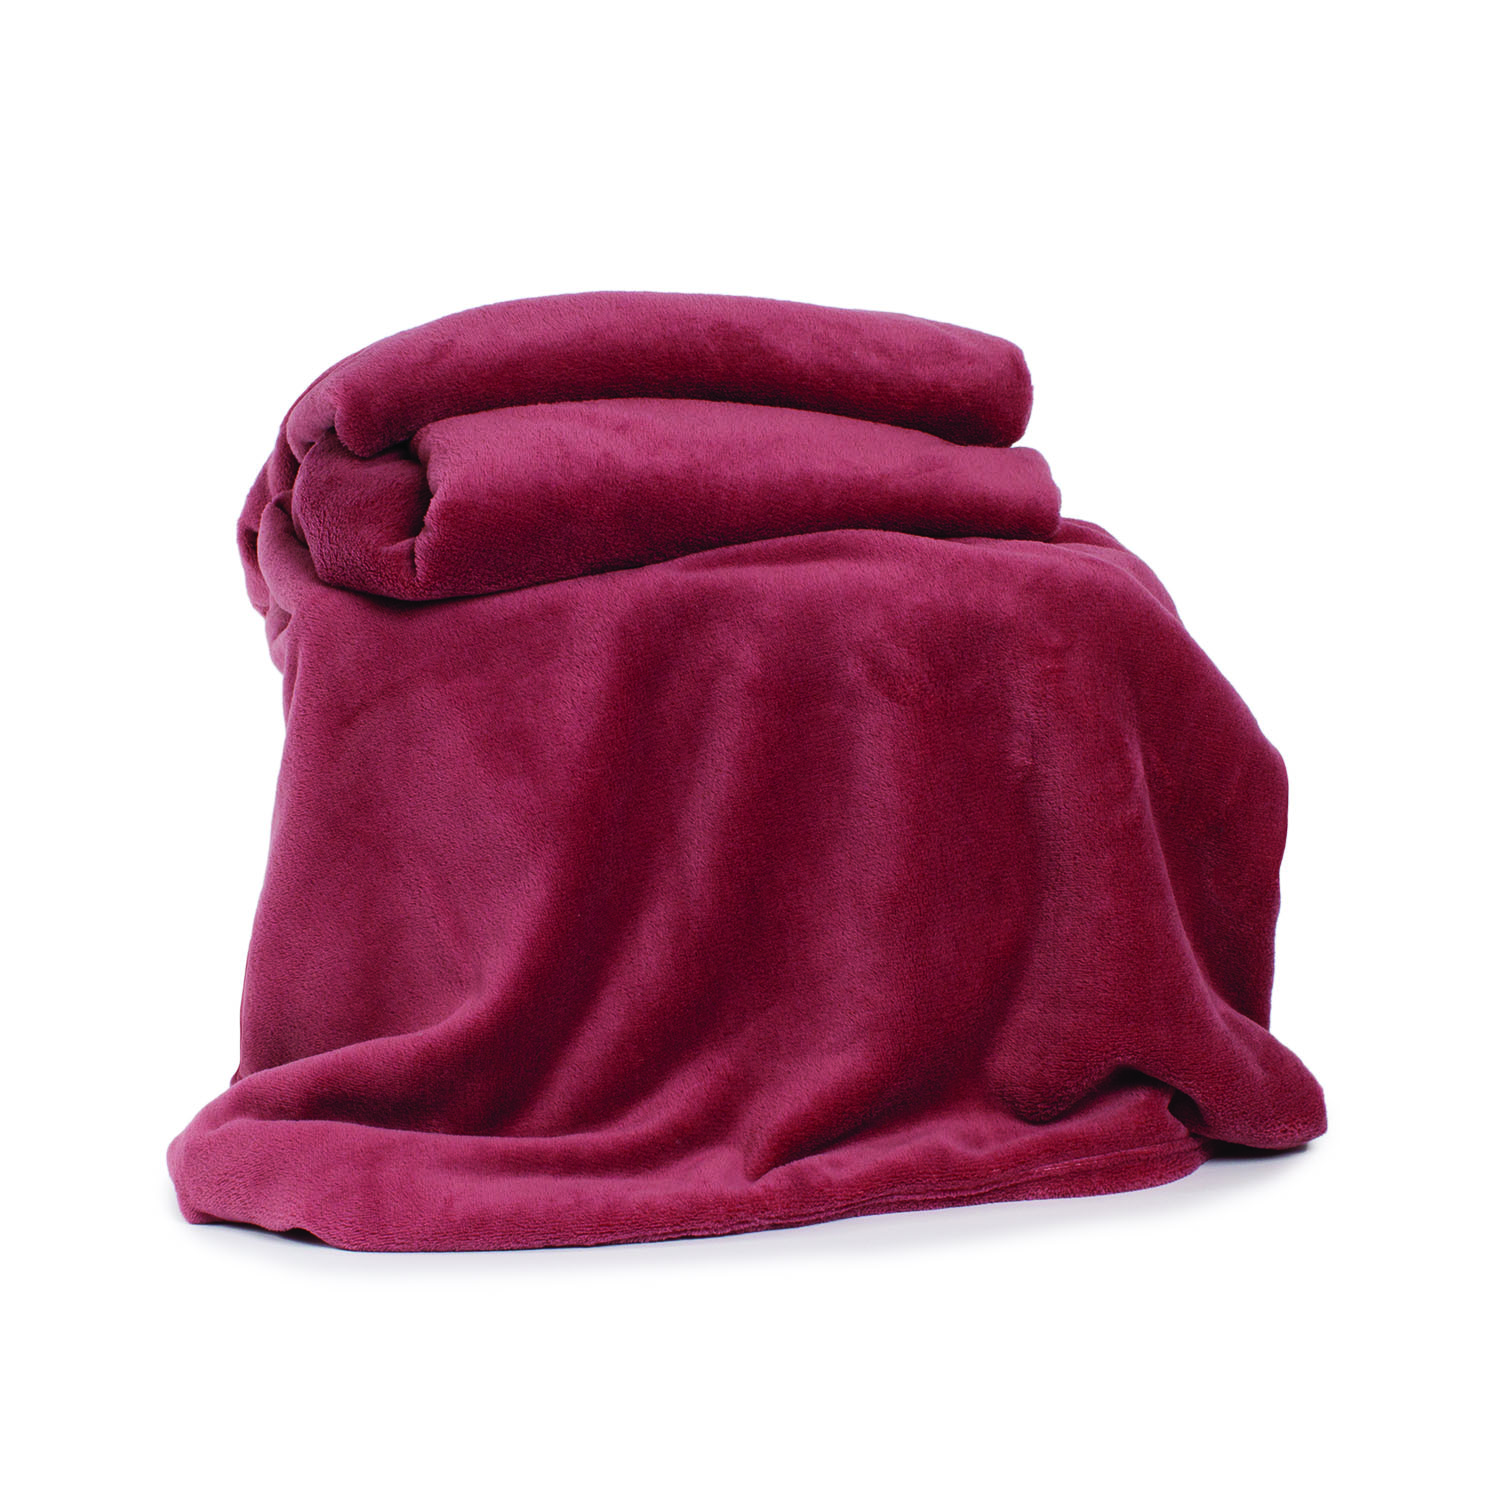 Deyongs Snuggle Touch Throw 140x180 Rose